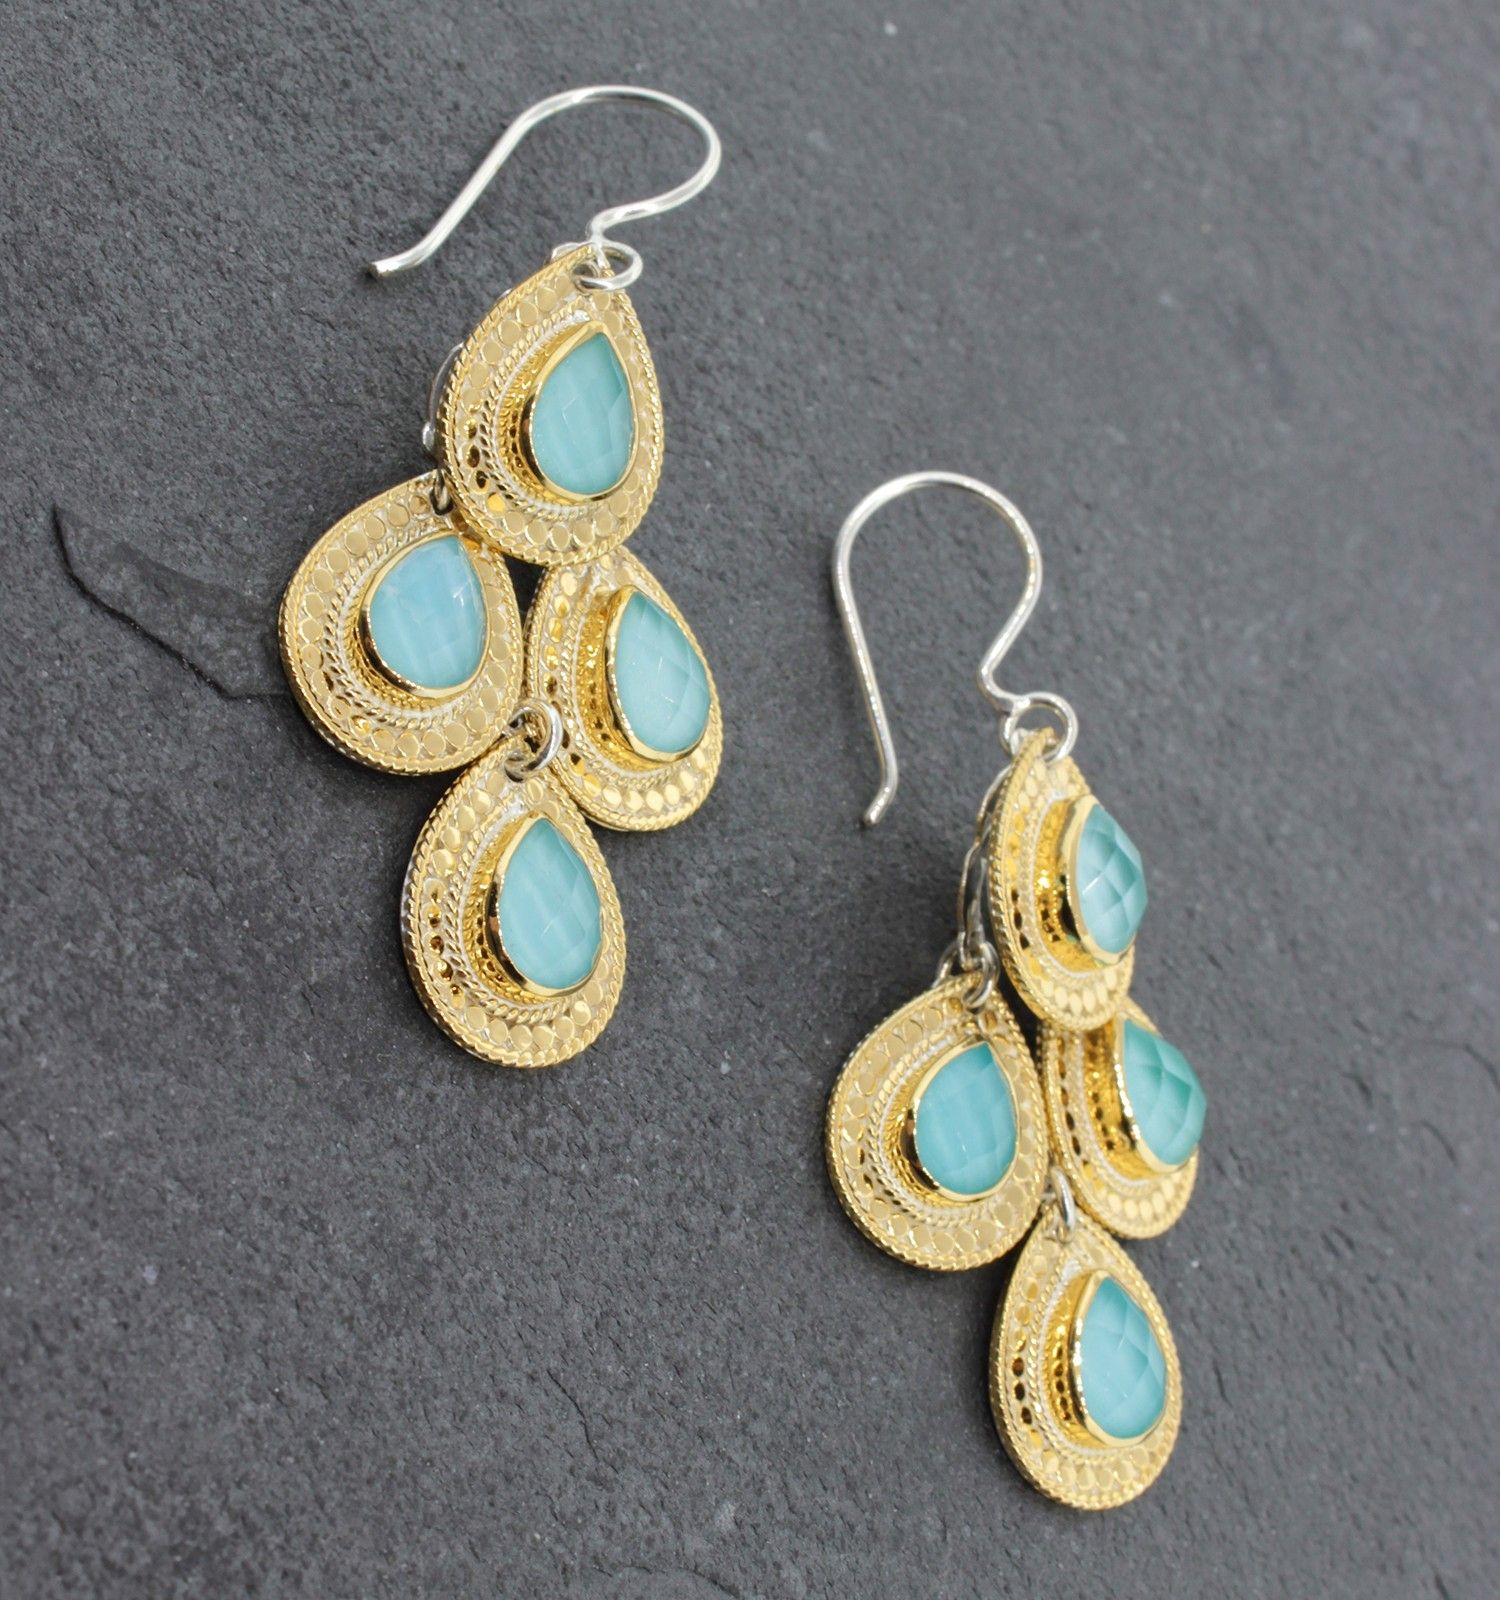 Anna Beck Gili Chandelier Earrings Sterling Silver And 14k Gold Plated Over Turquoise